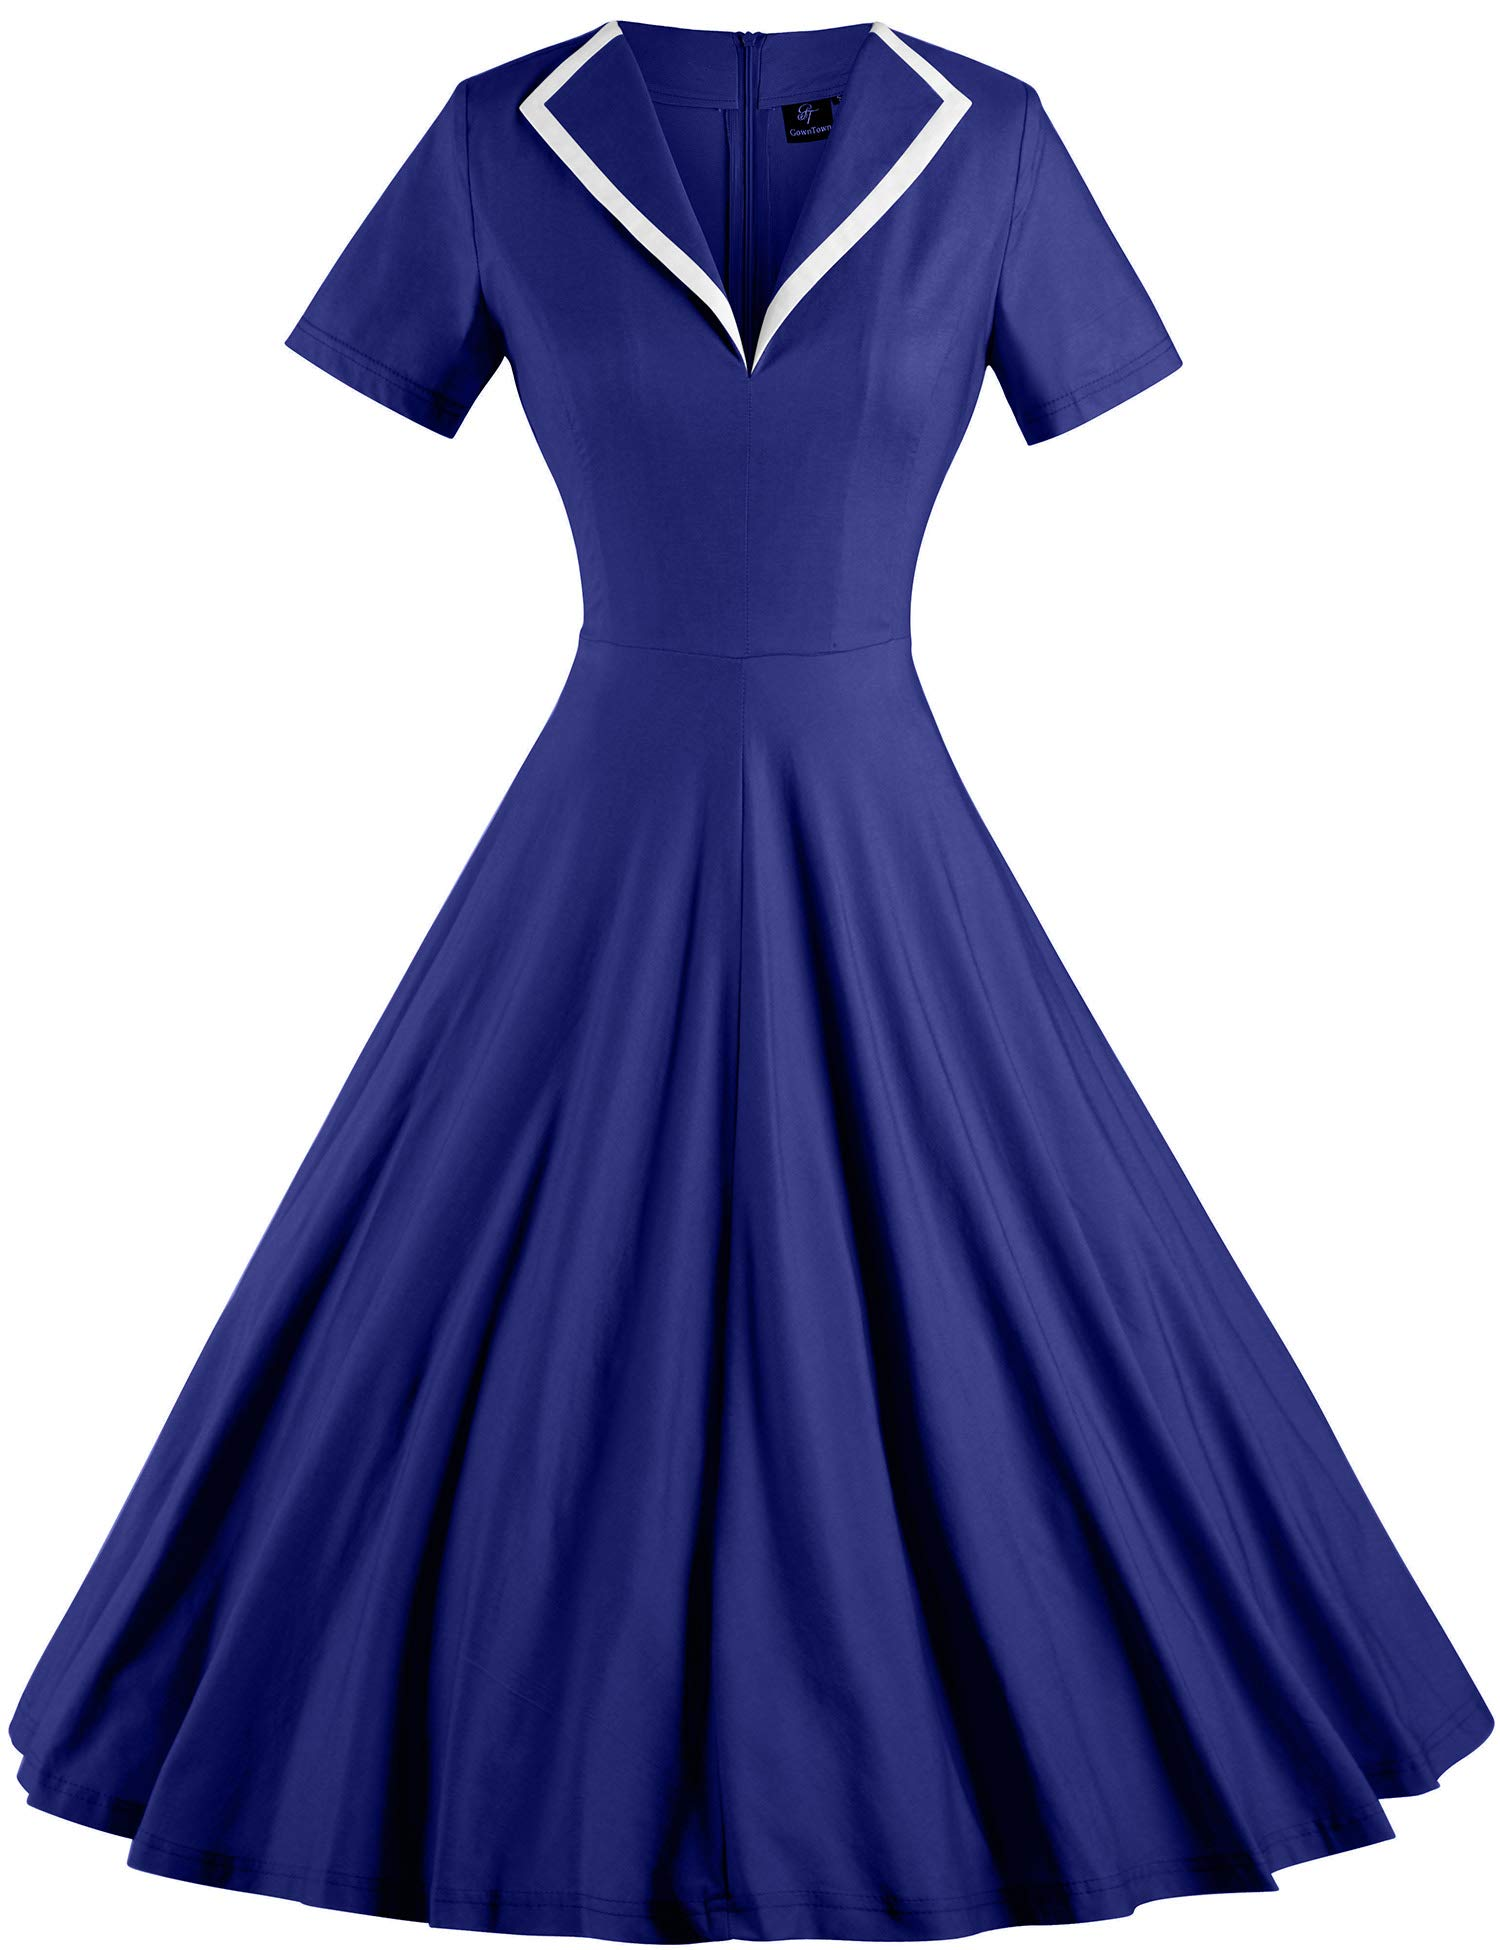 2515d4eea6 GownTown Women's 1950s Retro Vintage V-Neck Party Swing Dresses Blue